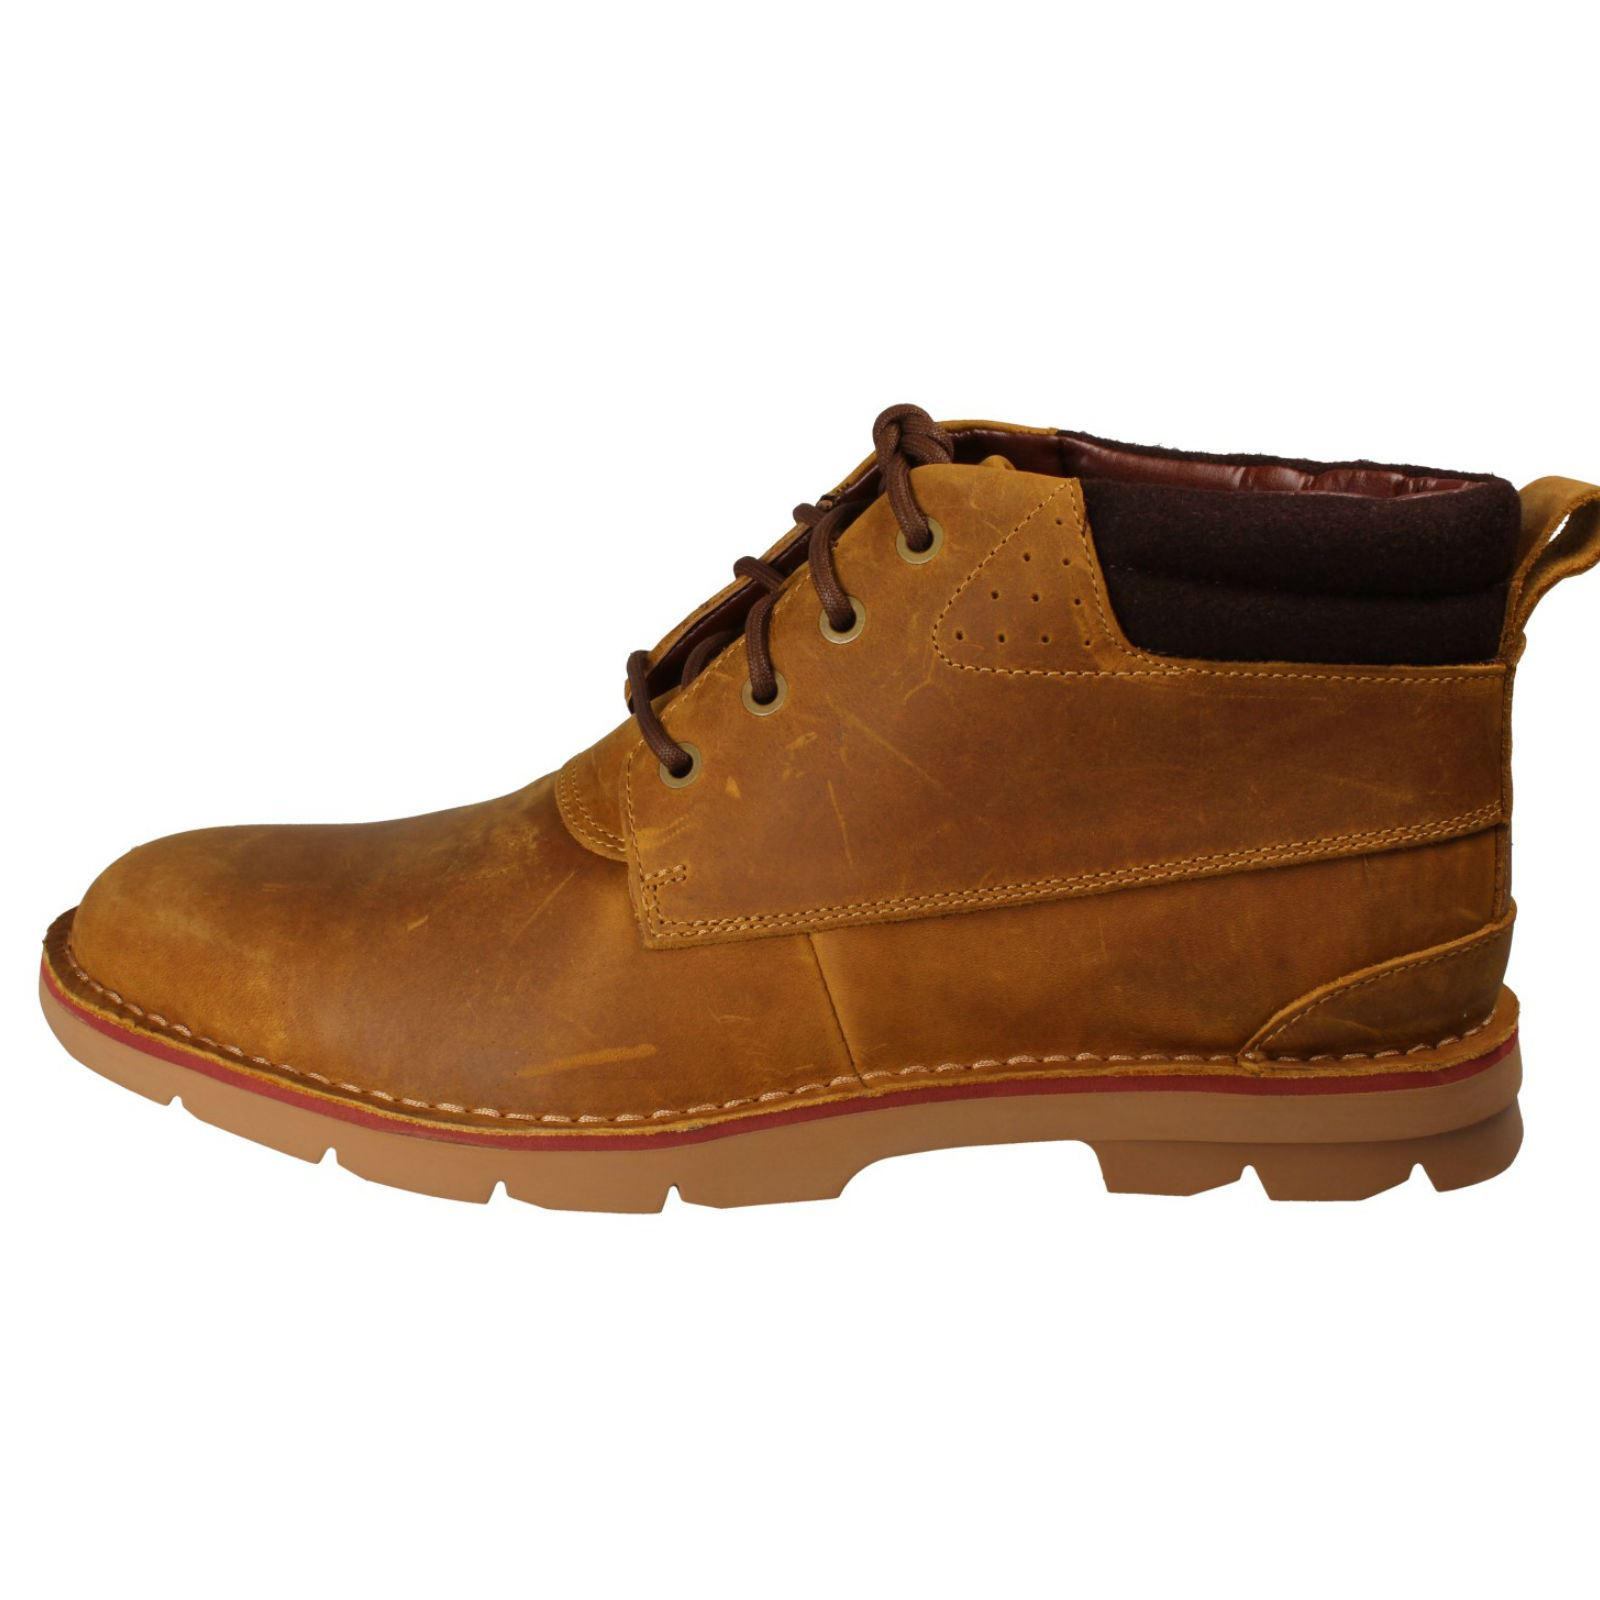 Mens-Clarks-Warm-Lined-Casual-Boots-039-Varick-Heal-039 thumbnail 19